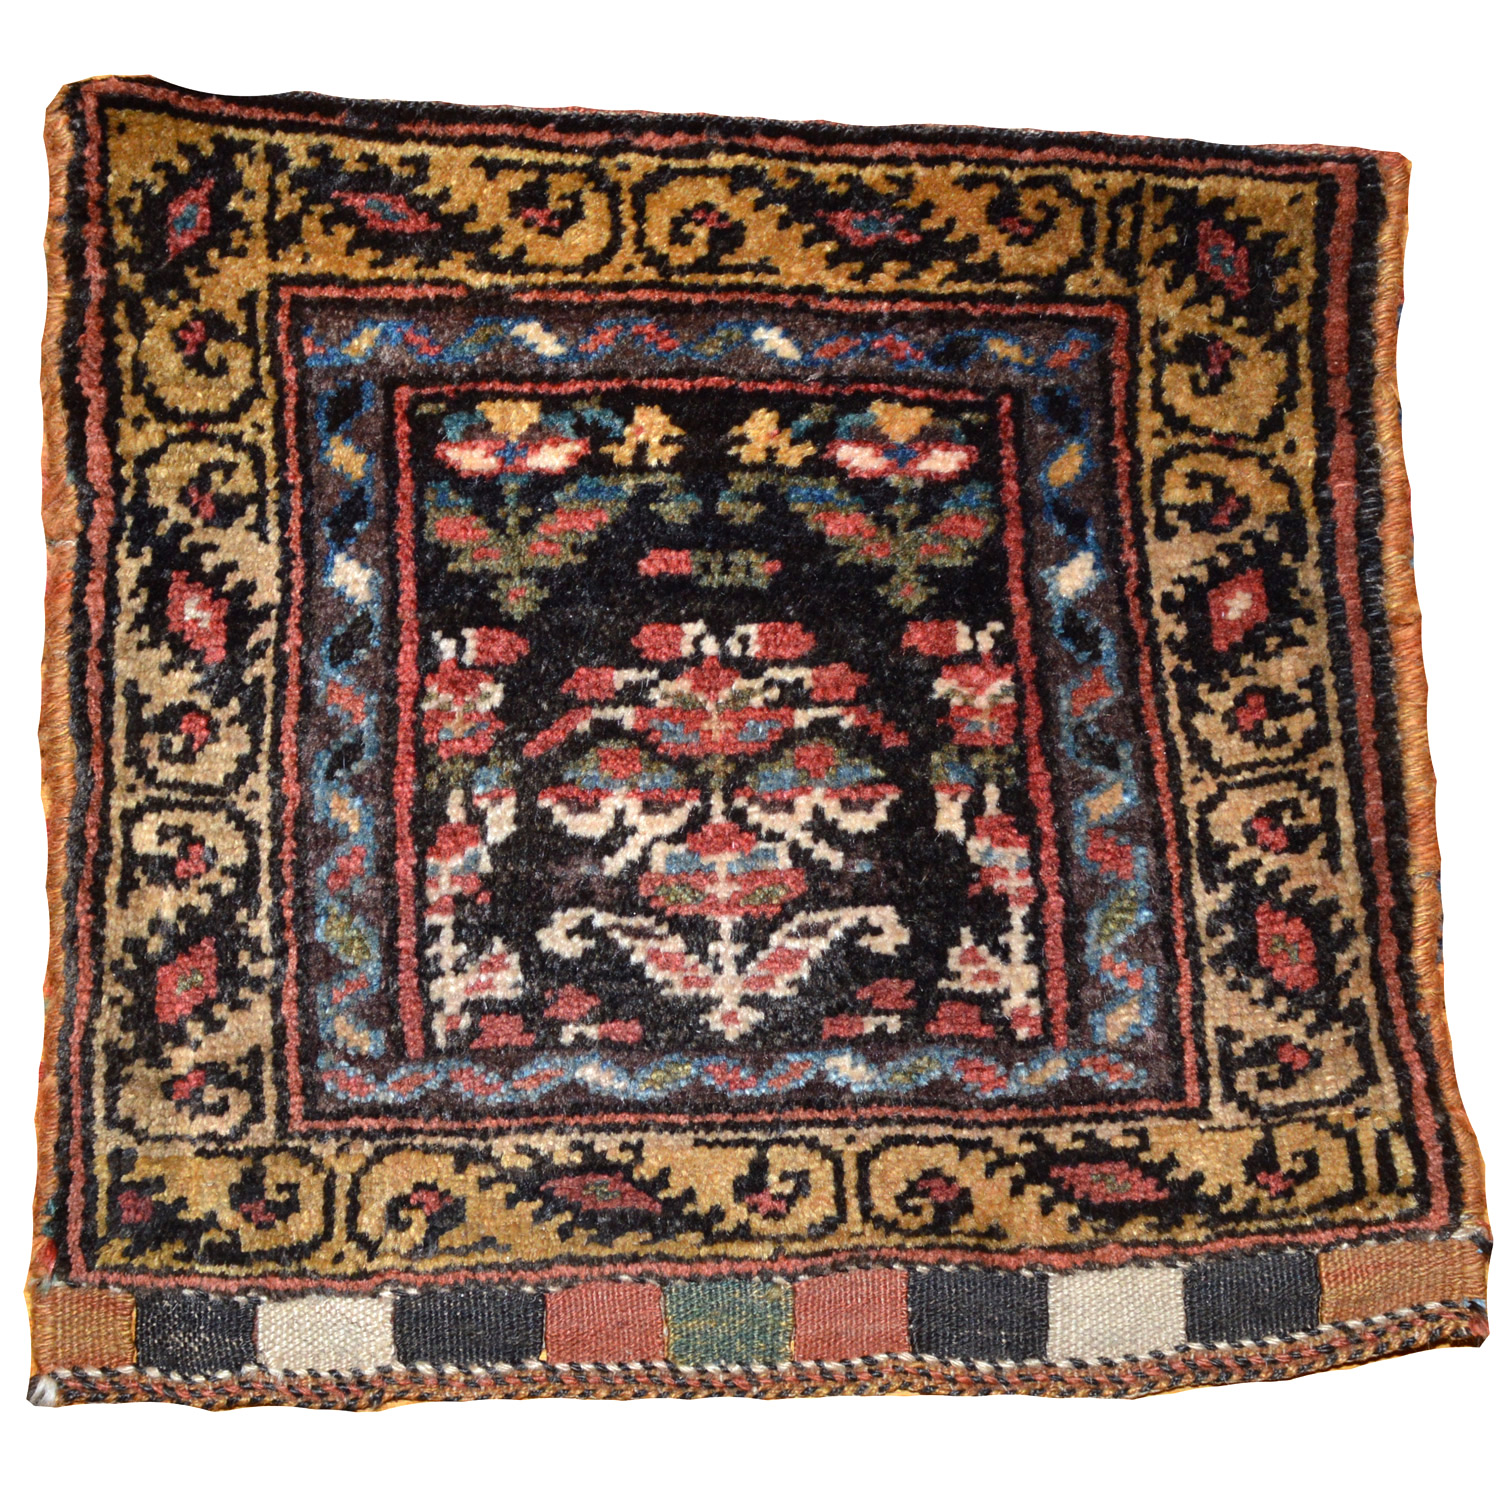 Antique northwest Persian Kurdish bag face with a grouping of flowers on a dark brown field.